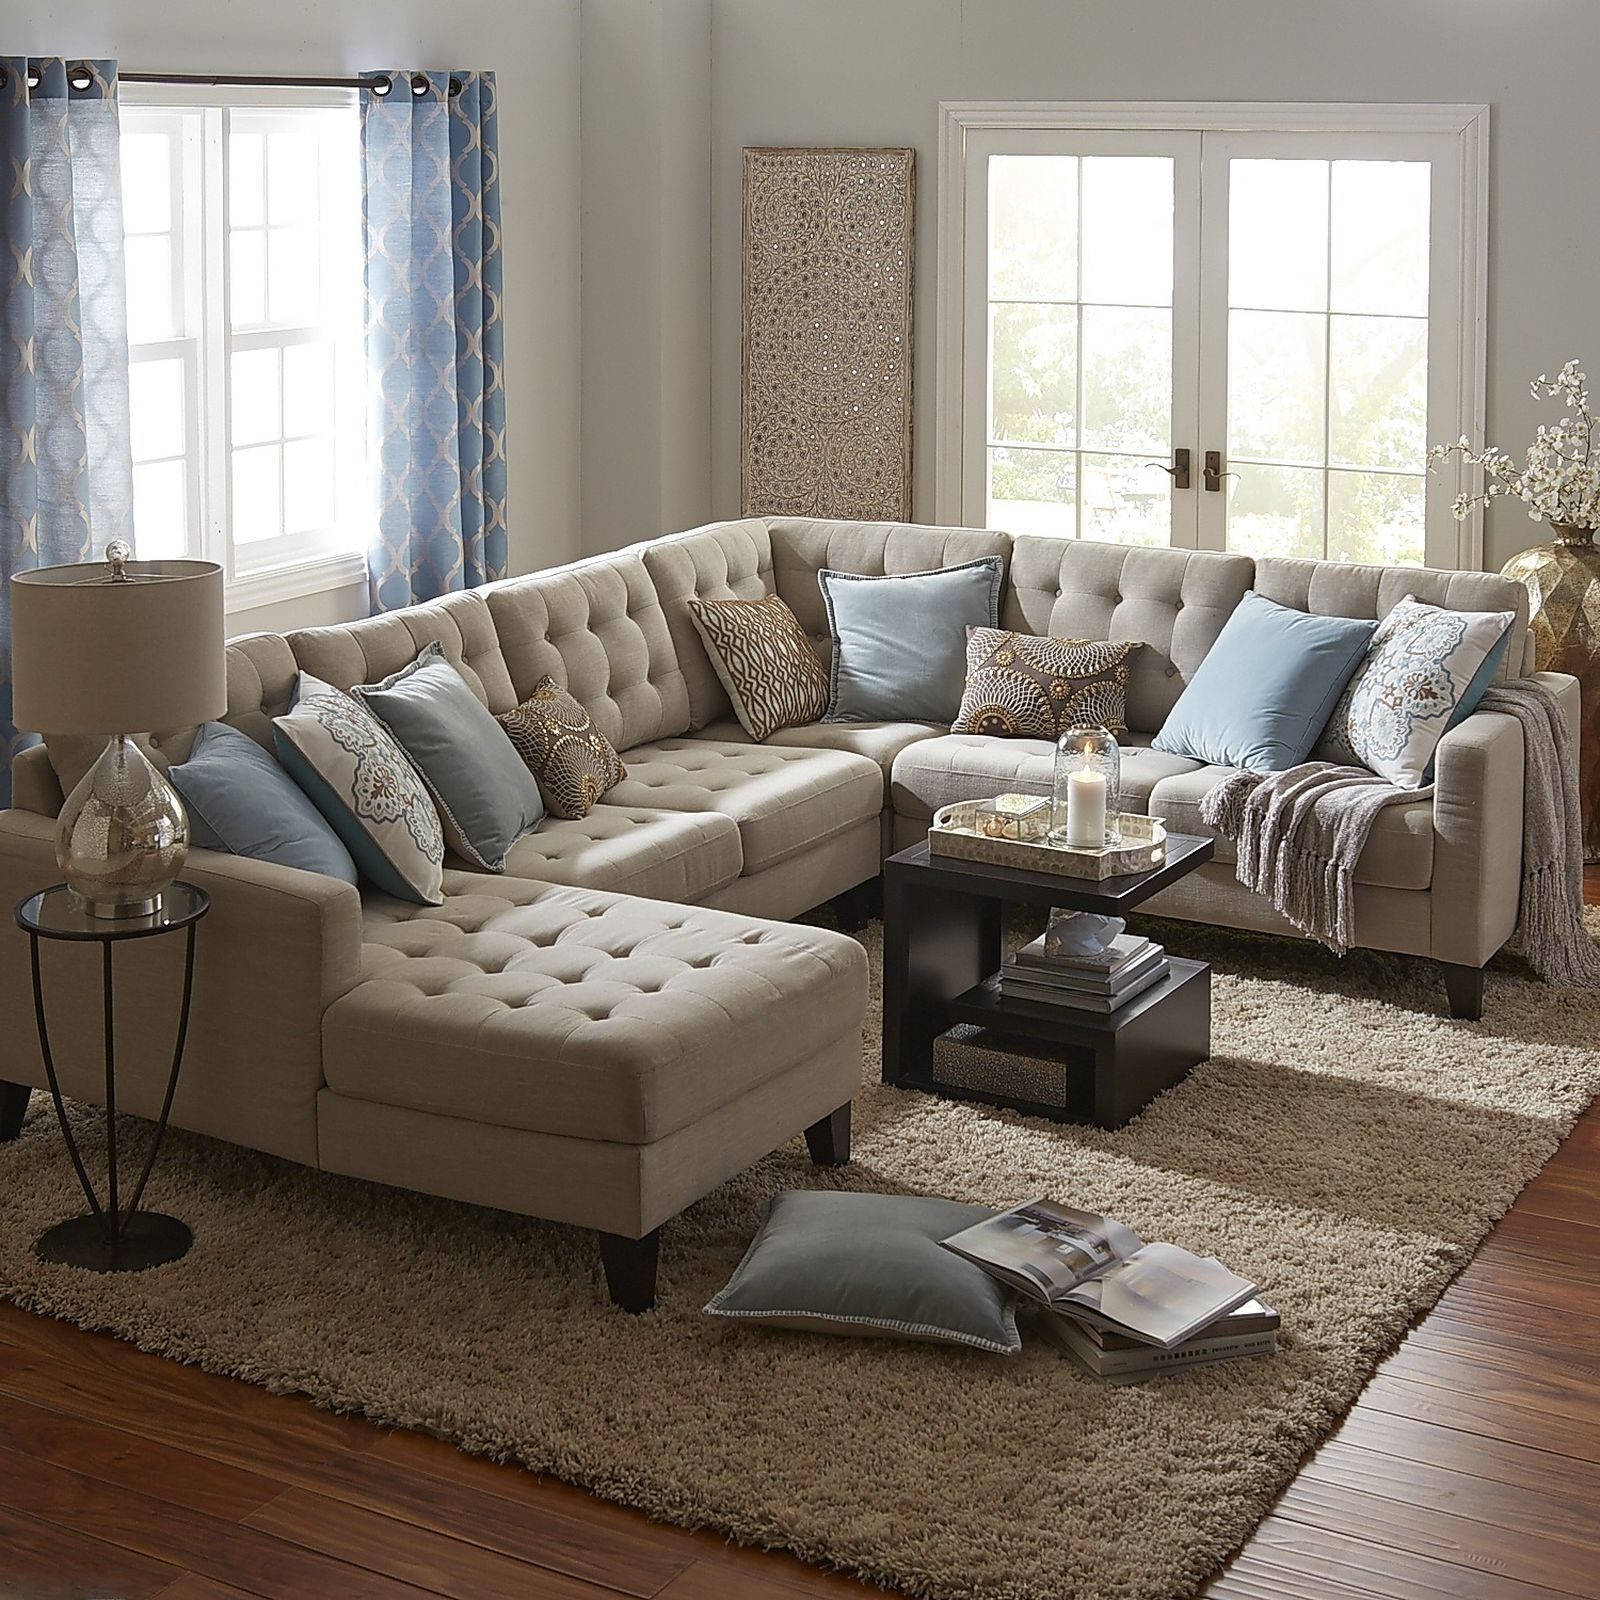 Well Known Epic Sectional Sofas 89 Living Room Sofa Inspiration With Inside Sectional Sofas (View 15 of 15)